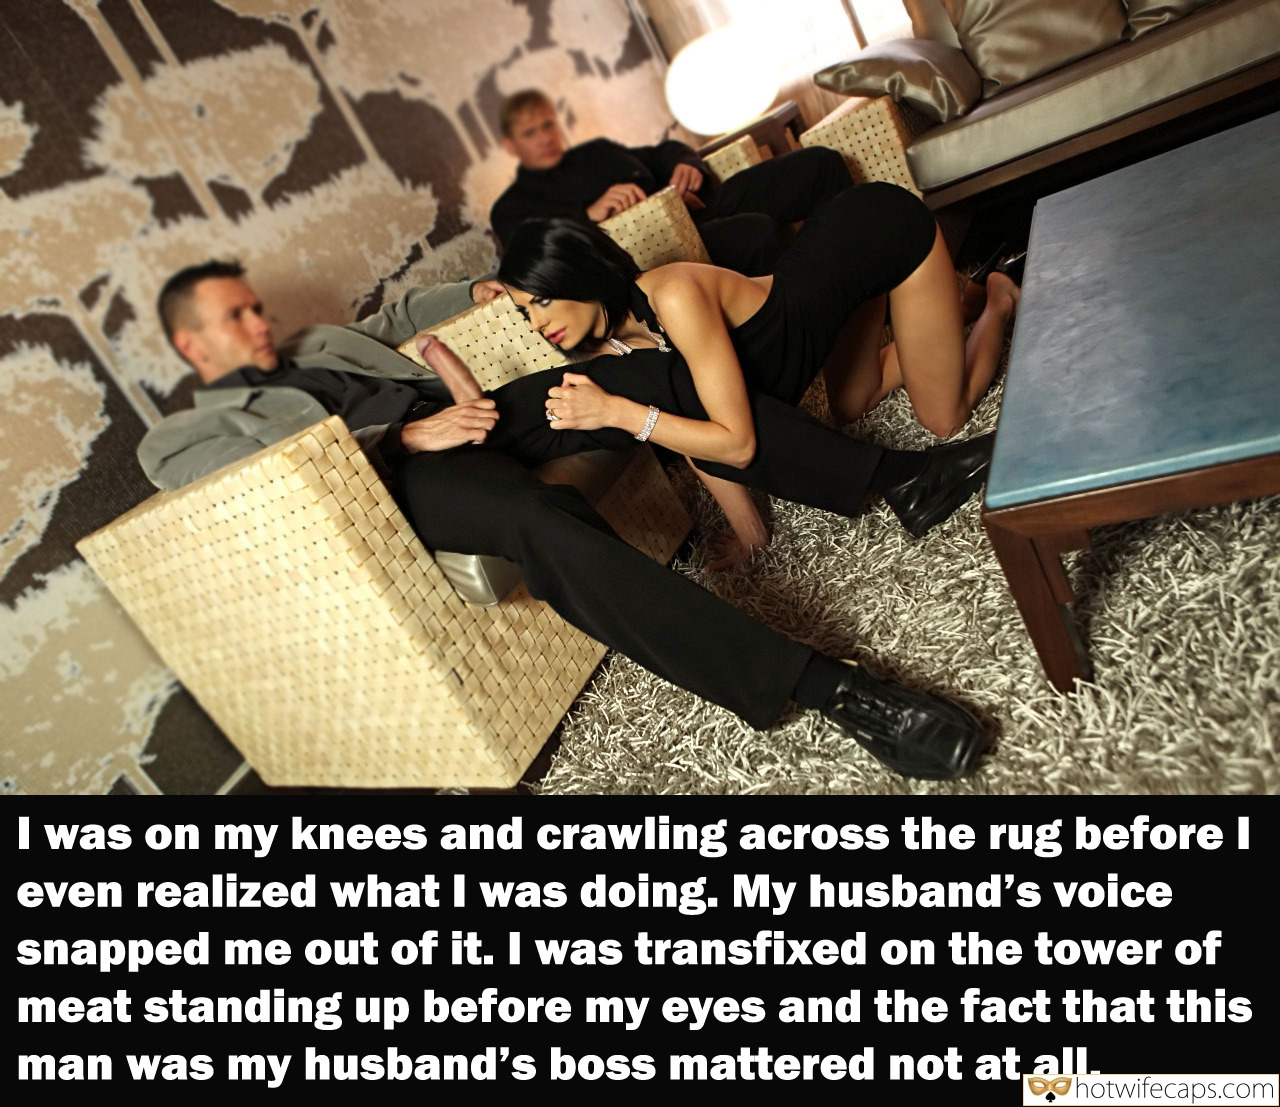 Wife Sharing Blowjob Bigger Cock hotwife caption: I was on my knees and crawling across the rug before I even realized what I was doing. My husband's voice snapped me out of it. I was transfixed on the tower of meat standing up before my eyes and...